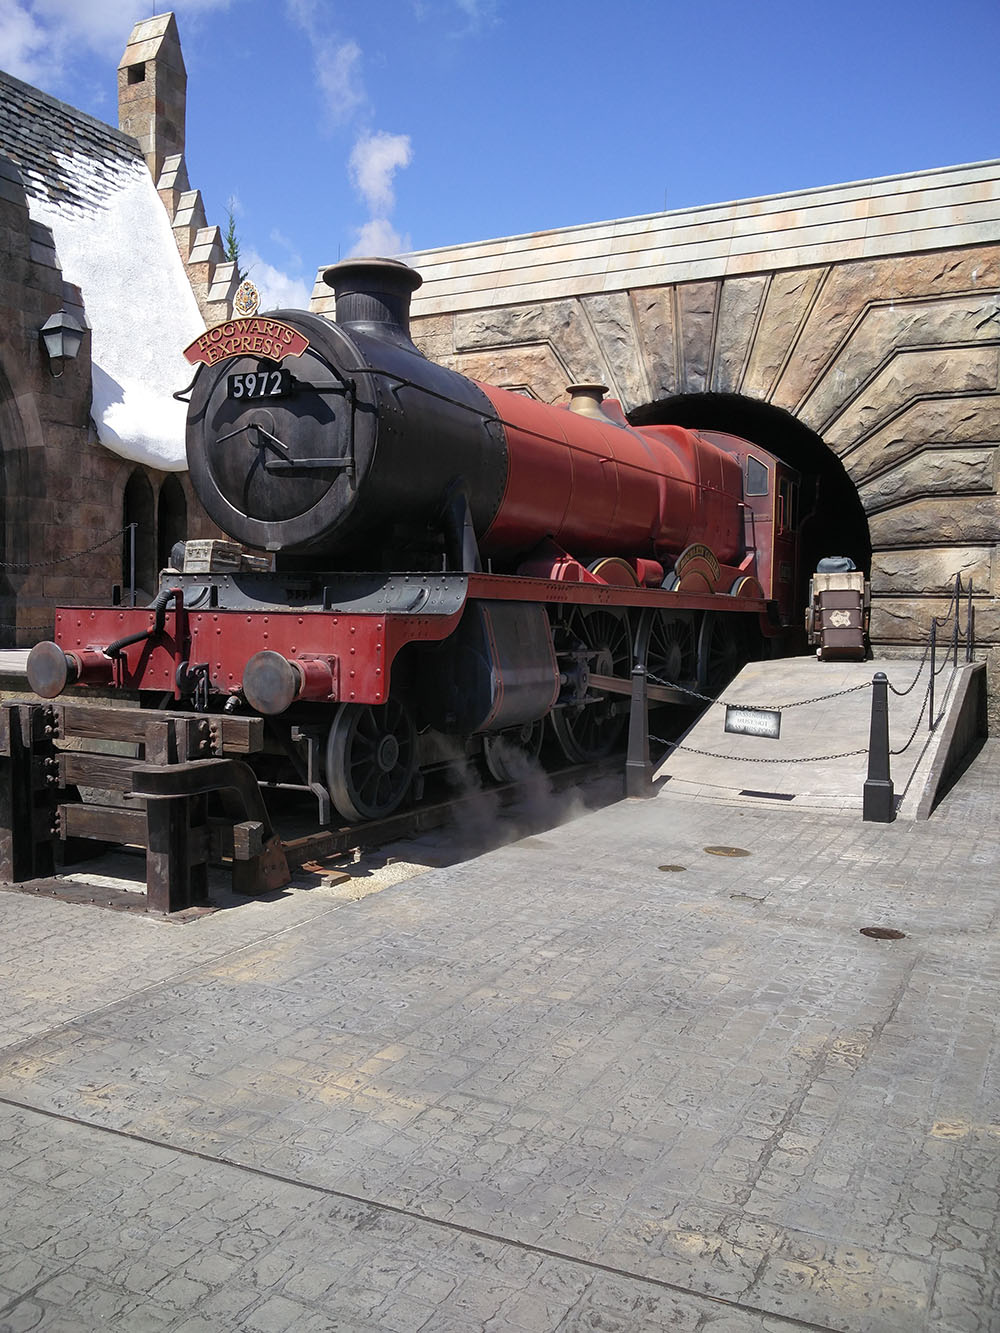 Hogwarts express - Universal's islands of adventure